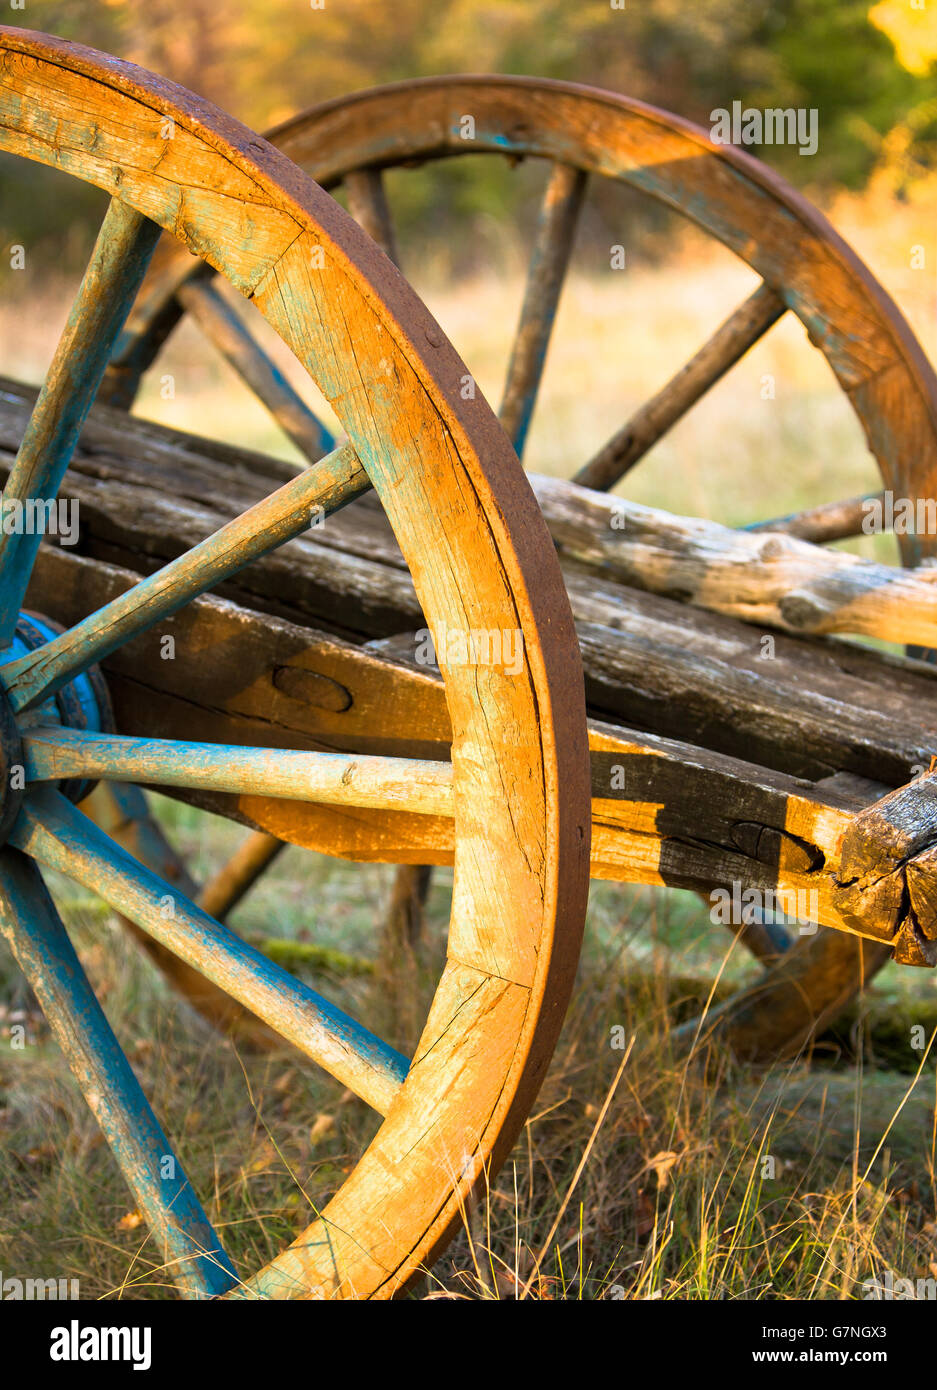 Painted Wagon Stock Photos & Painted Wagon Stock Images - Alamy